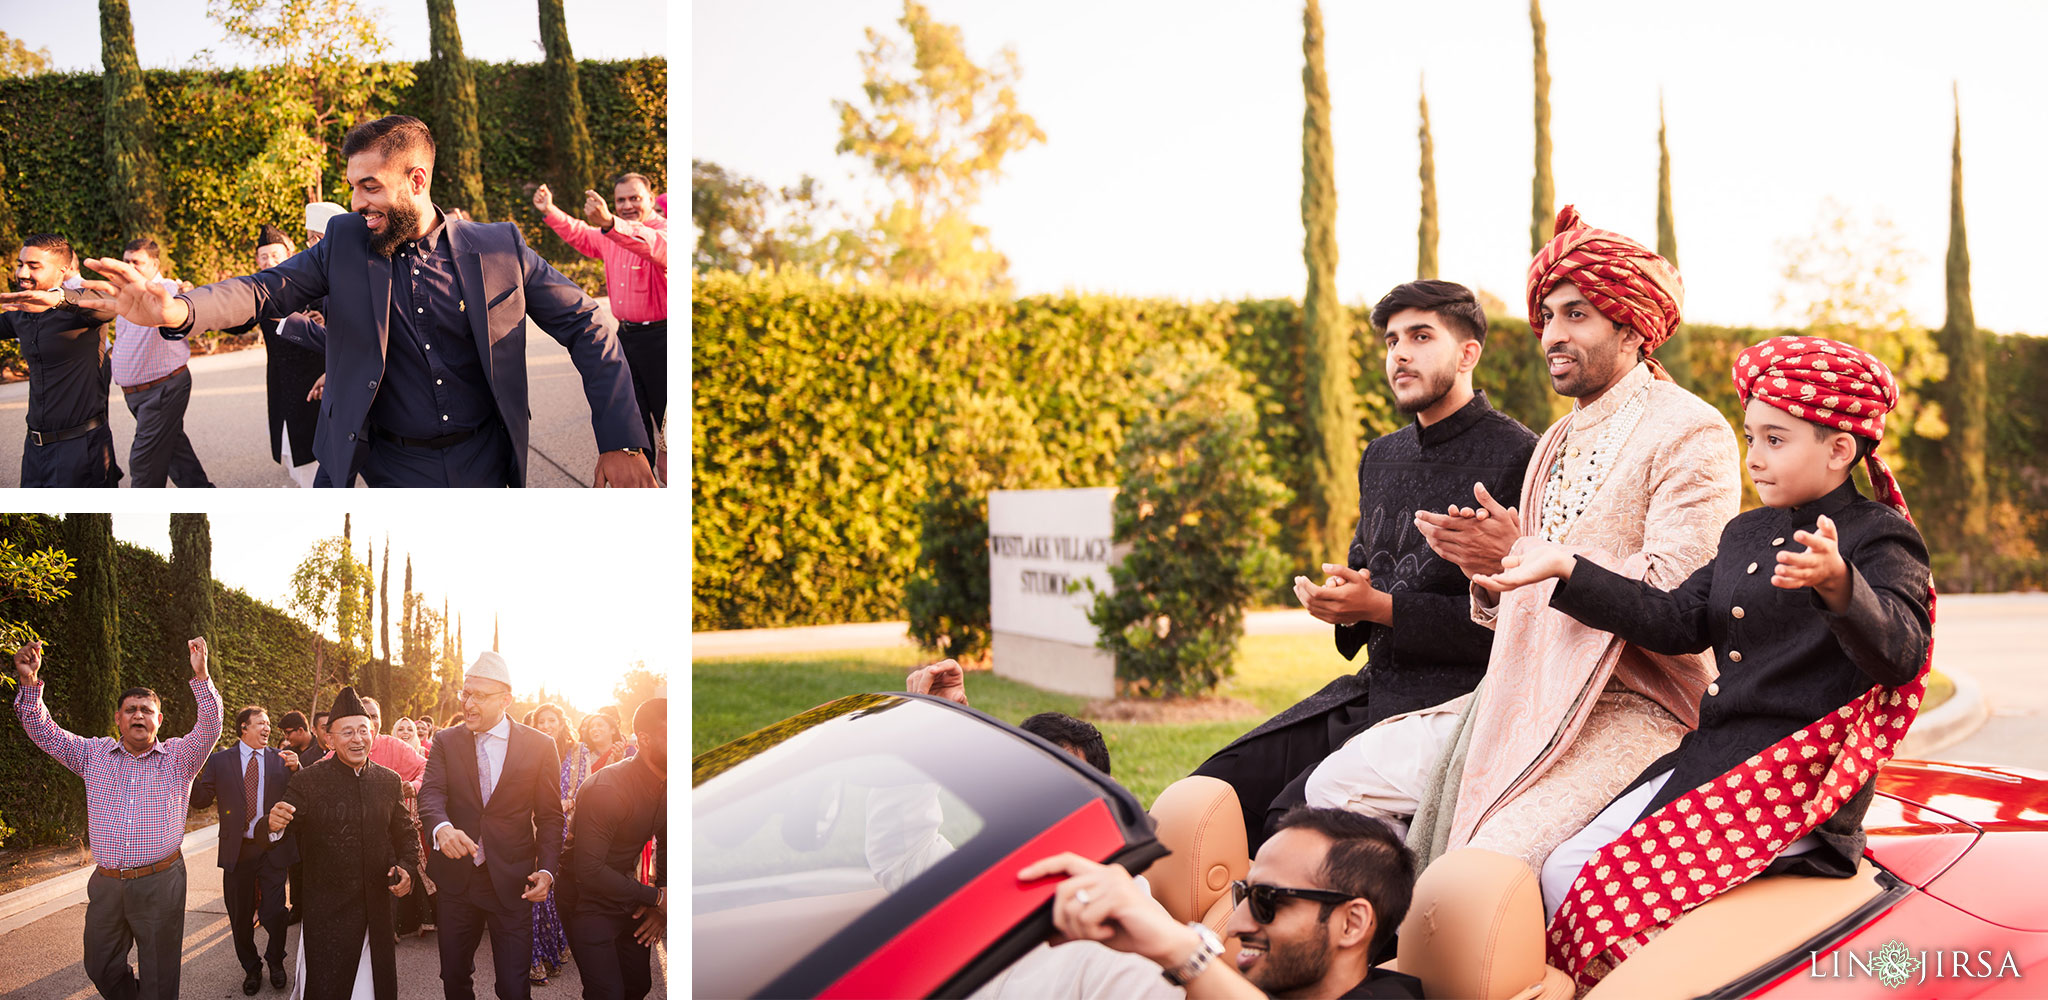 018 four seasons westlake village muslim wedding photography